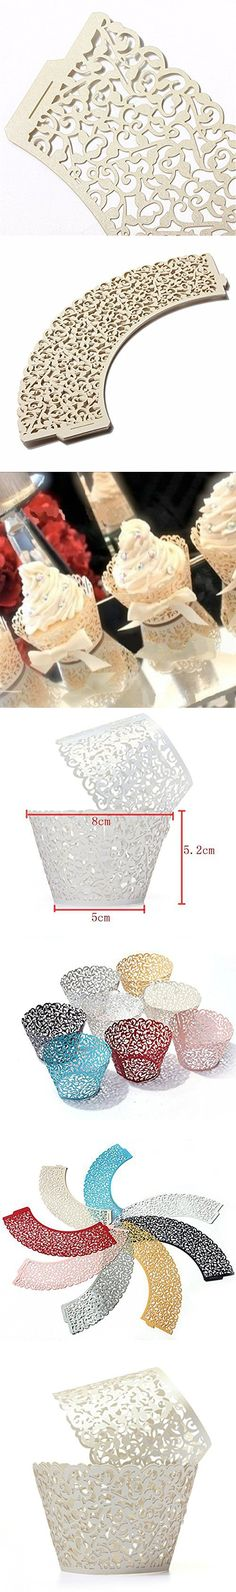 HUAL Cupcake Wrappers 100 Filigree Artistic Bake Cake Paper Cups Little Vine Lace Laser Cut Liner Baking Cup Muffin Case Trays for Wedding Party Birthday Decoration (Cream)